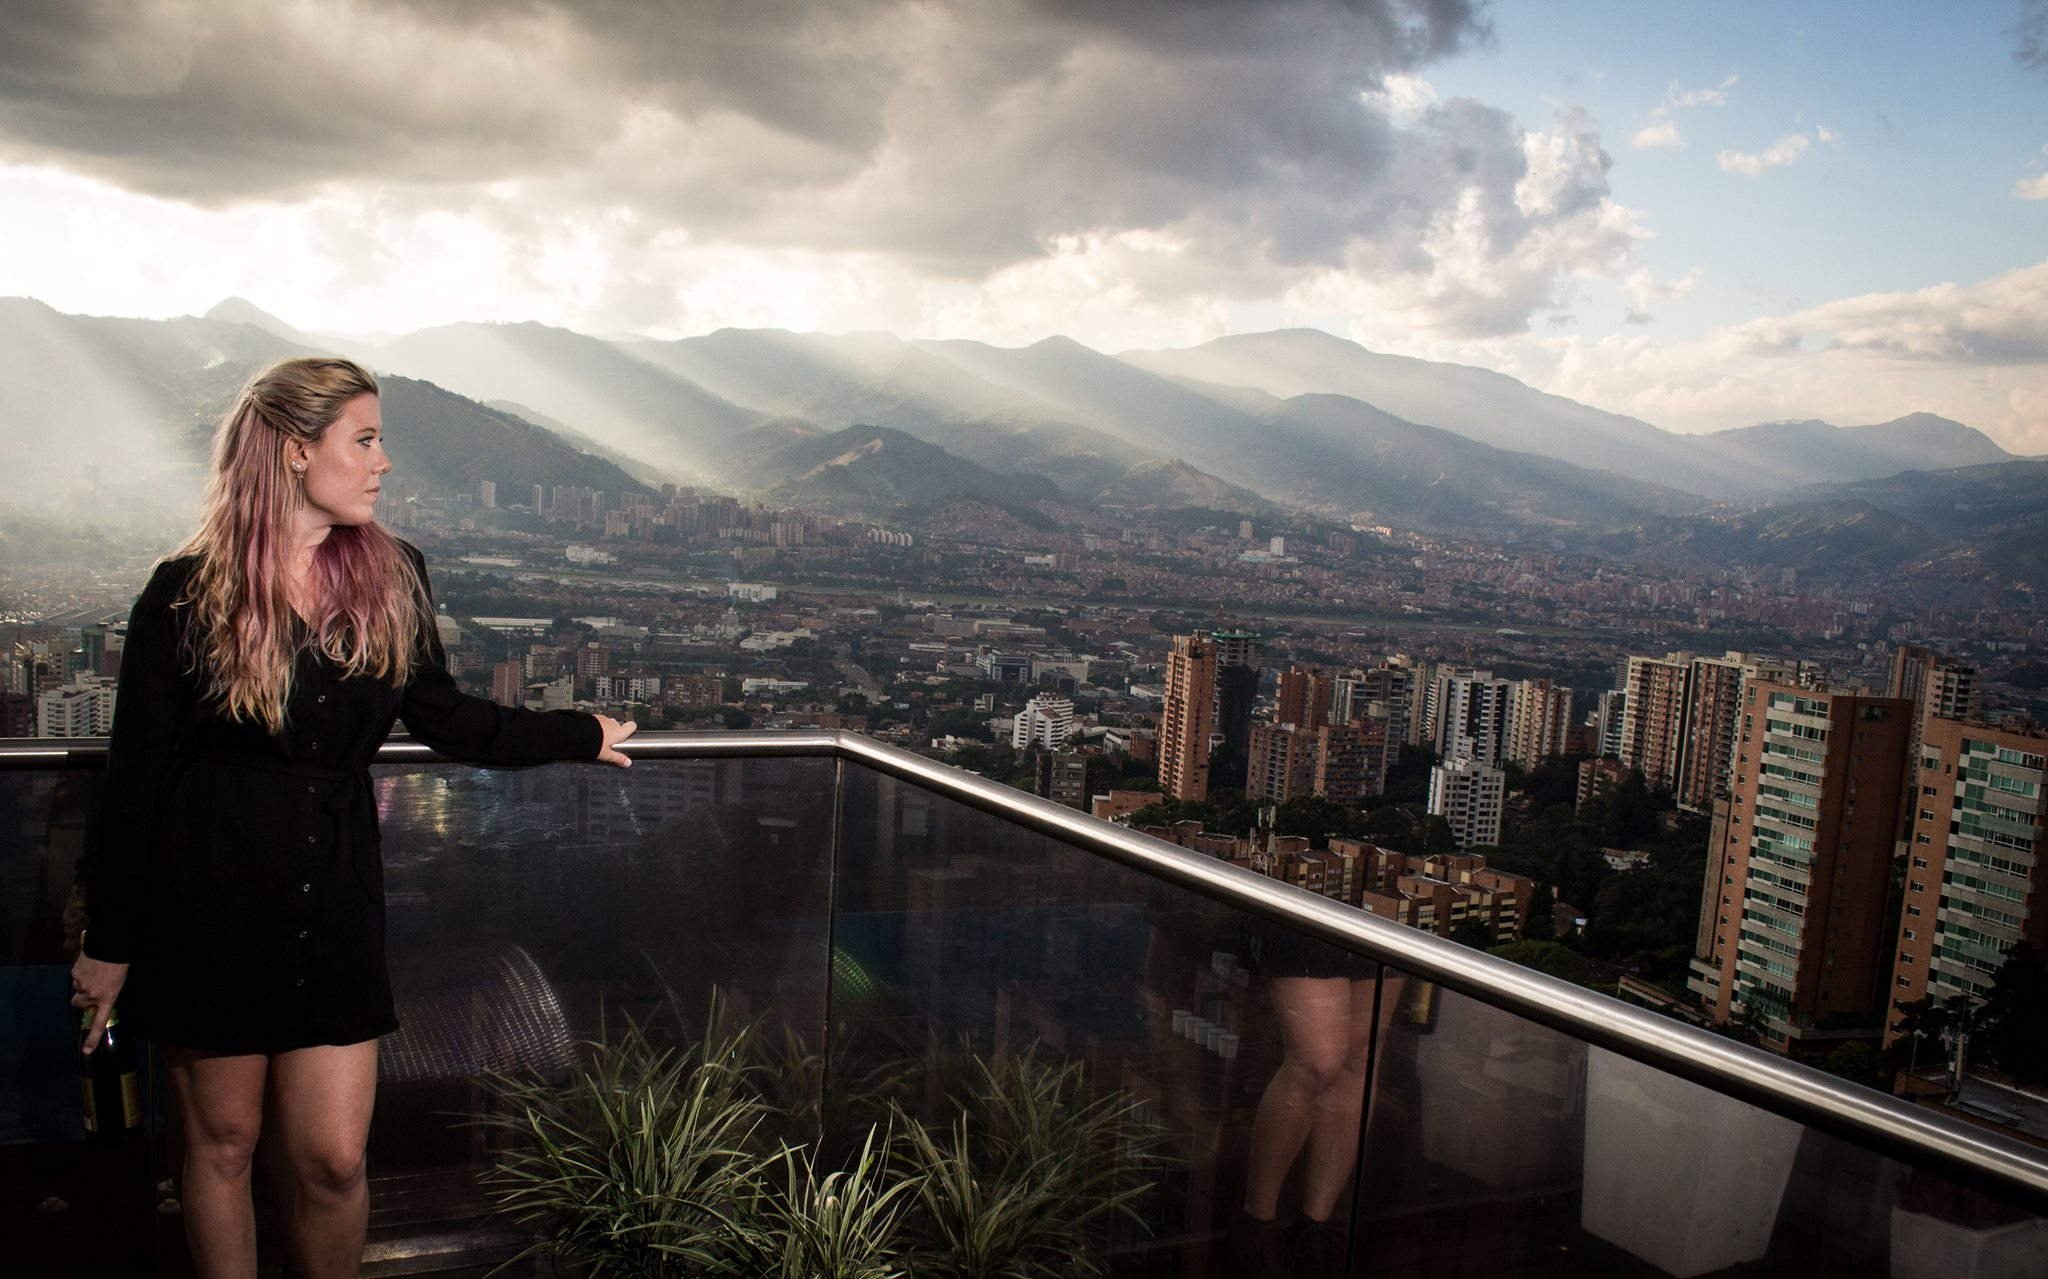 Woman standing on balcony overlooking stormy Medellin sky.